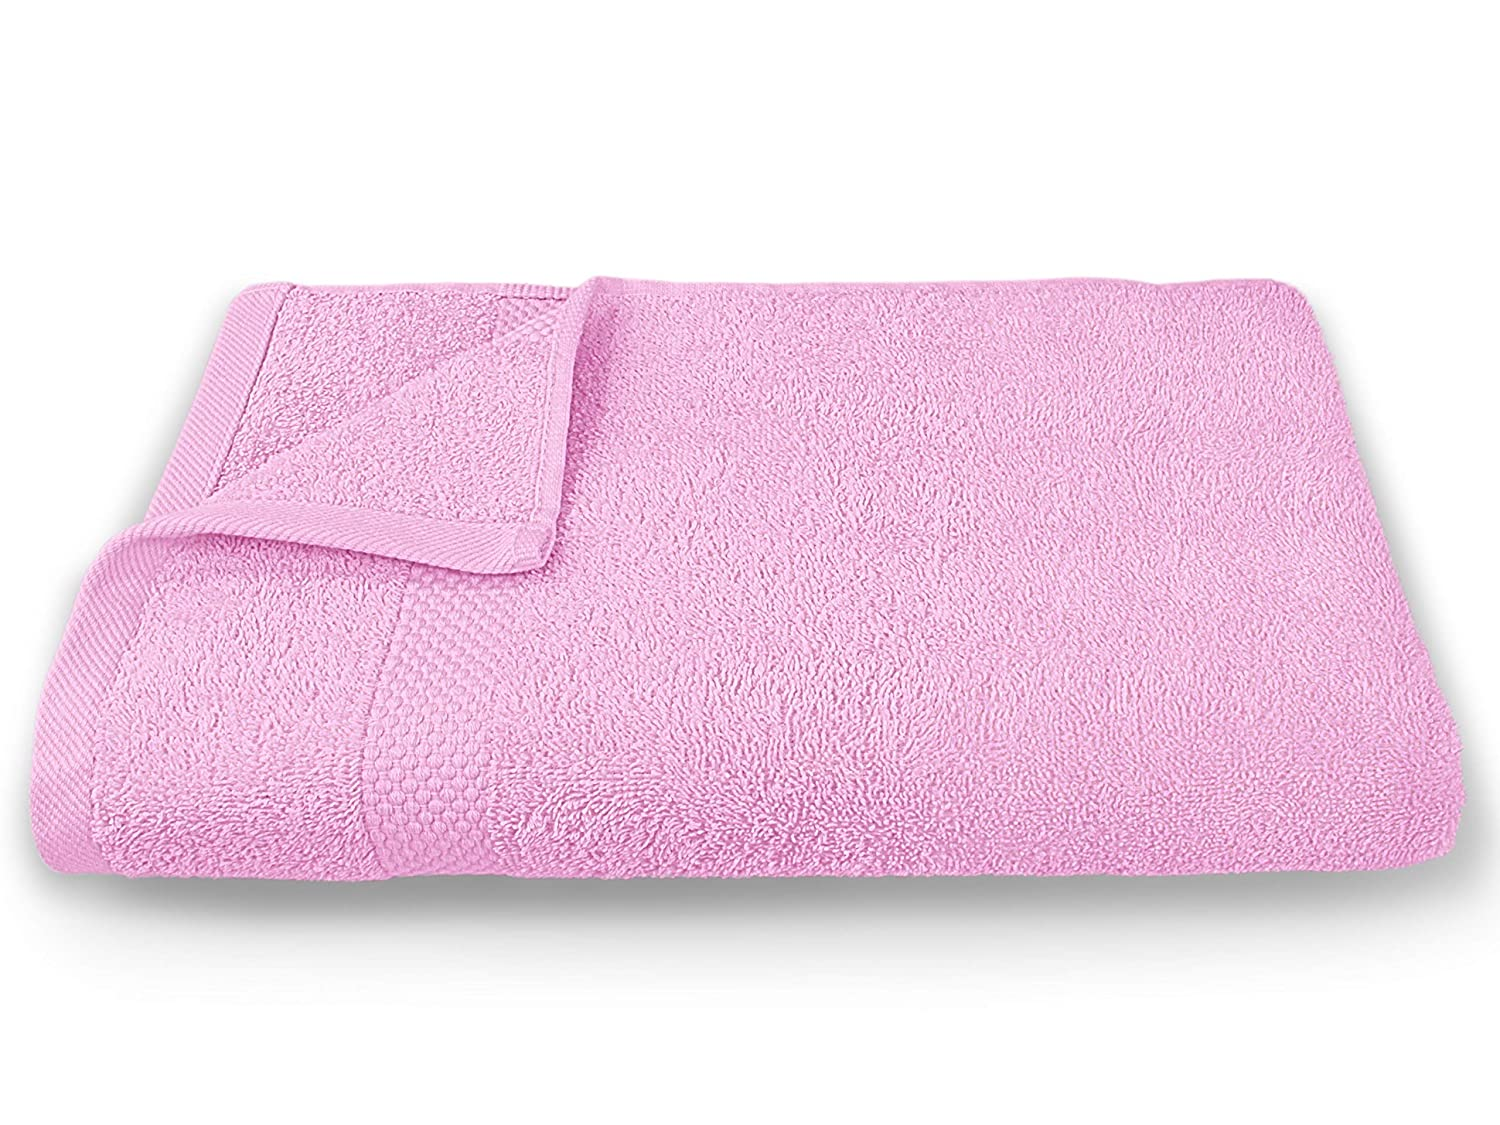 7686ed0a357fd Incredibly soft organic towel., pink, 1 Liegetuch 70 x 200 cm:  Amazon.co.uk: Kitchen & Home